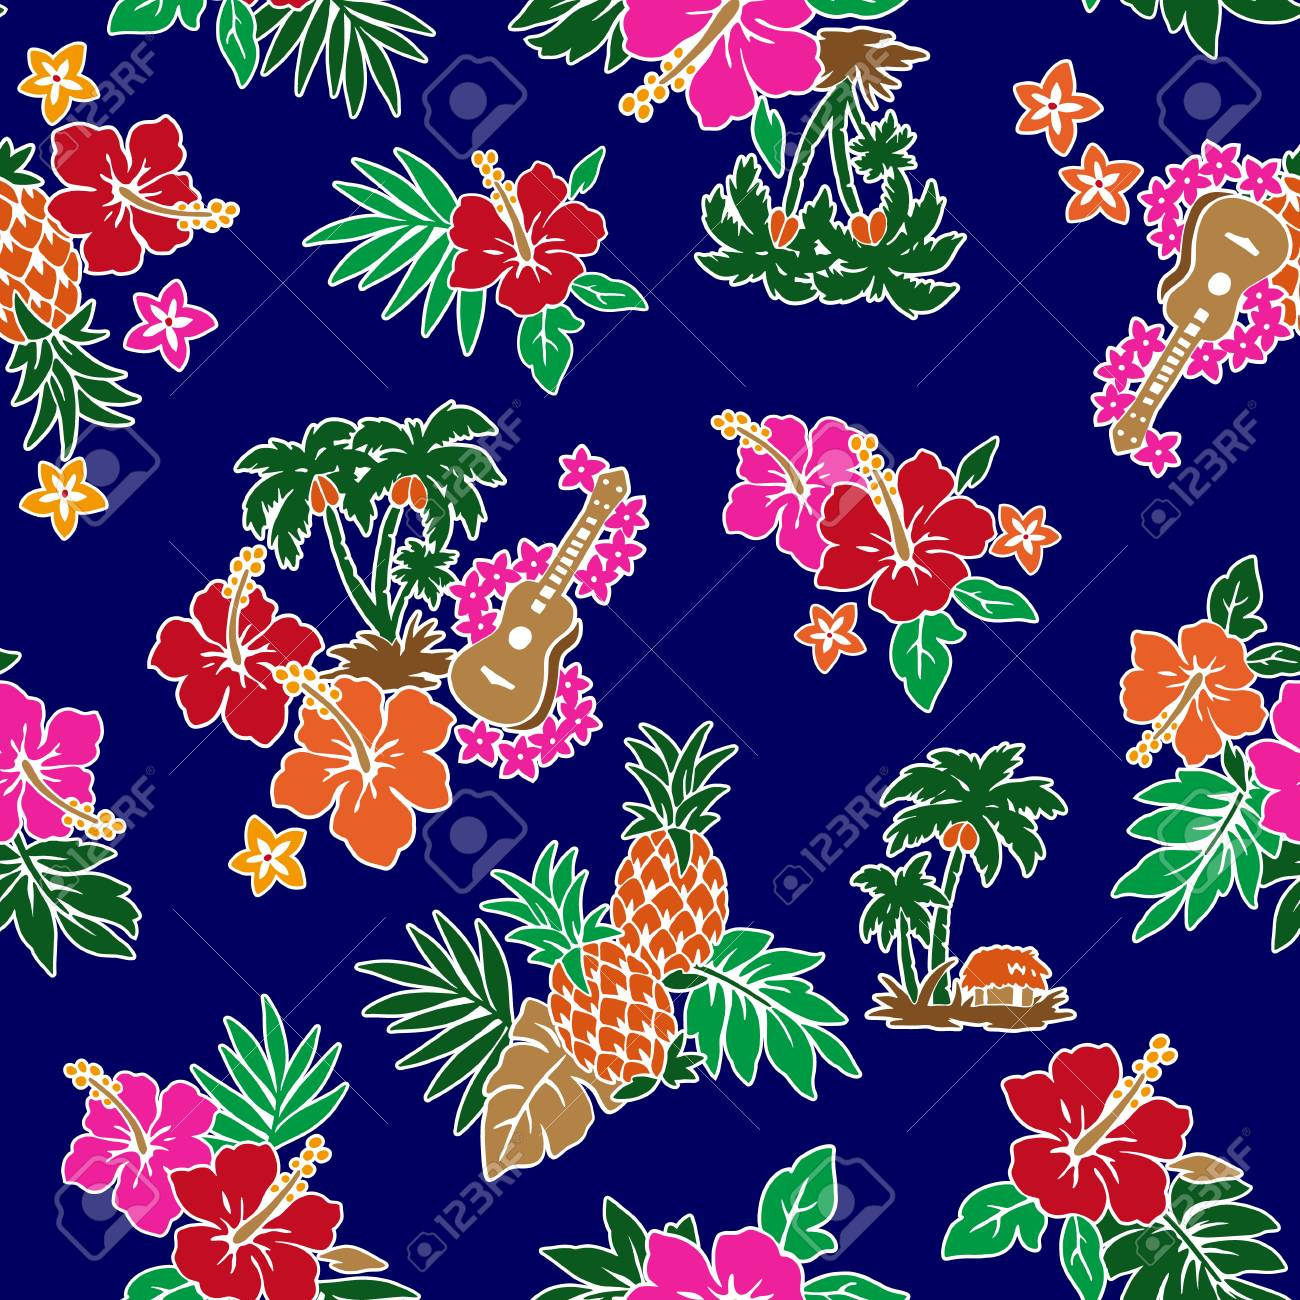 Hibiscus Flower Pattern Royalty Free Cliparts Vectors And Stock Illustration Image 71033588